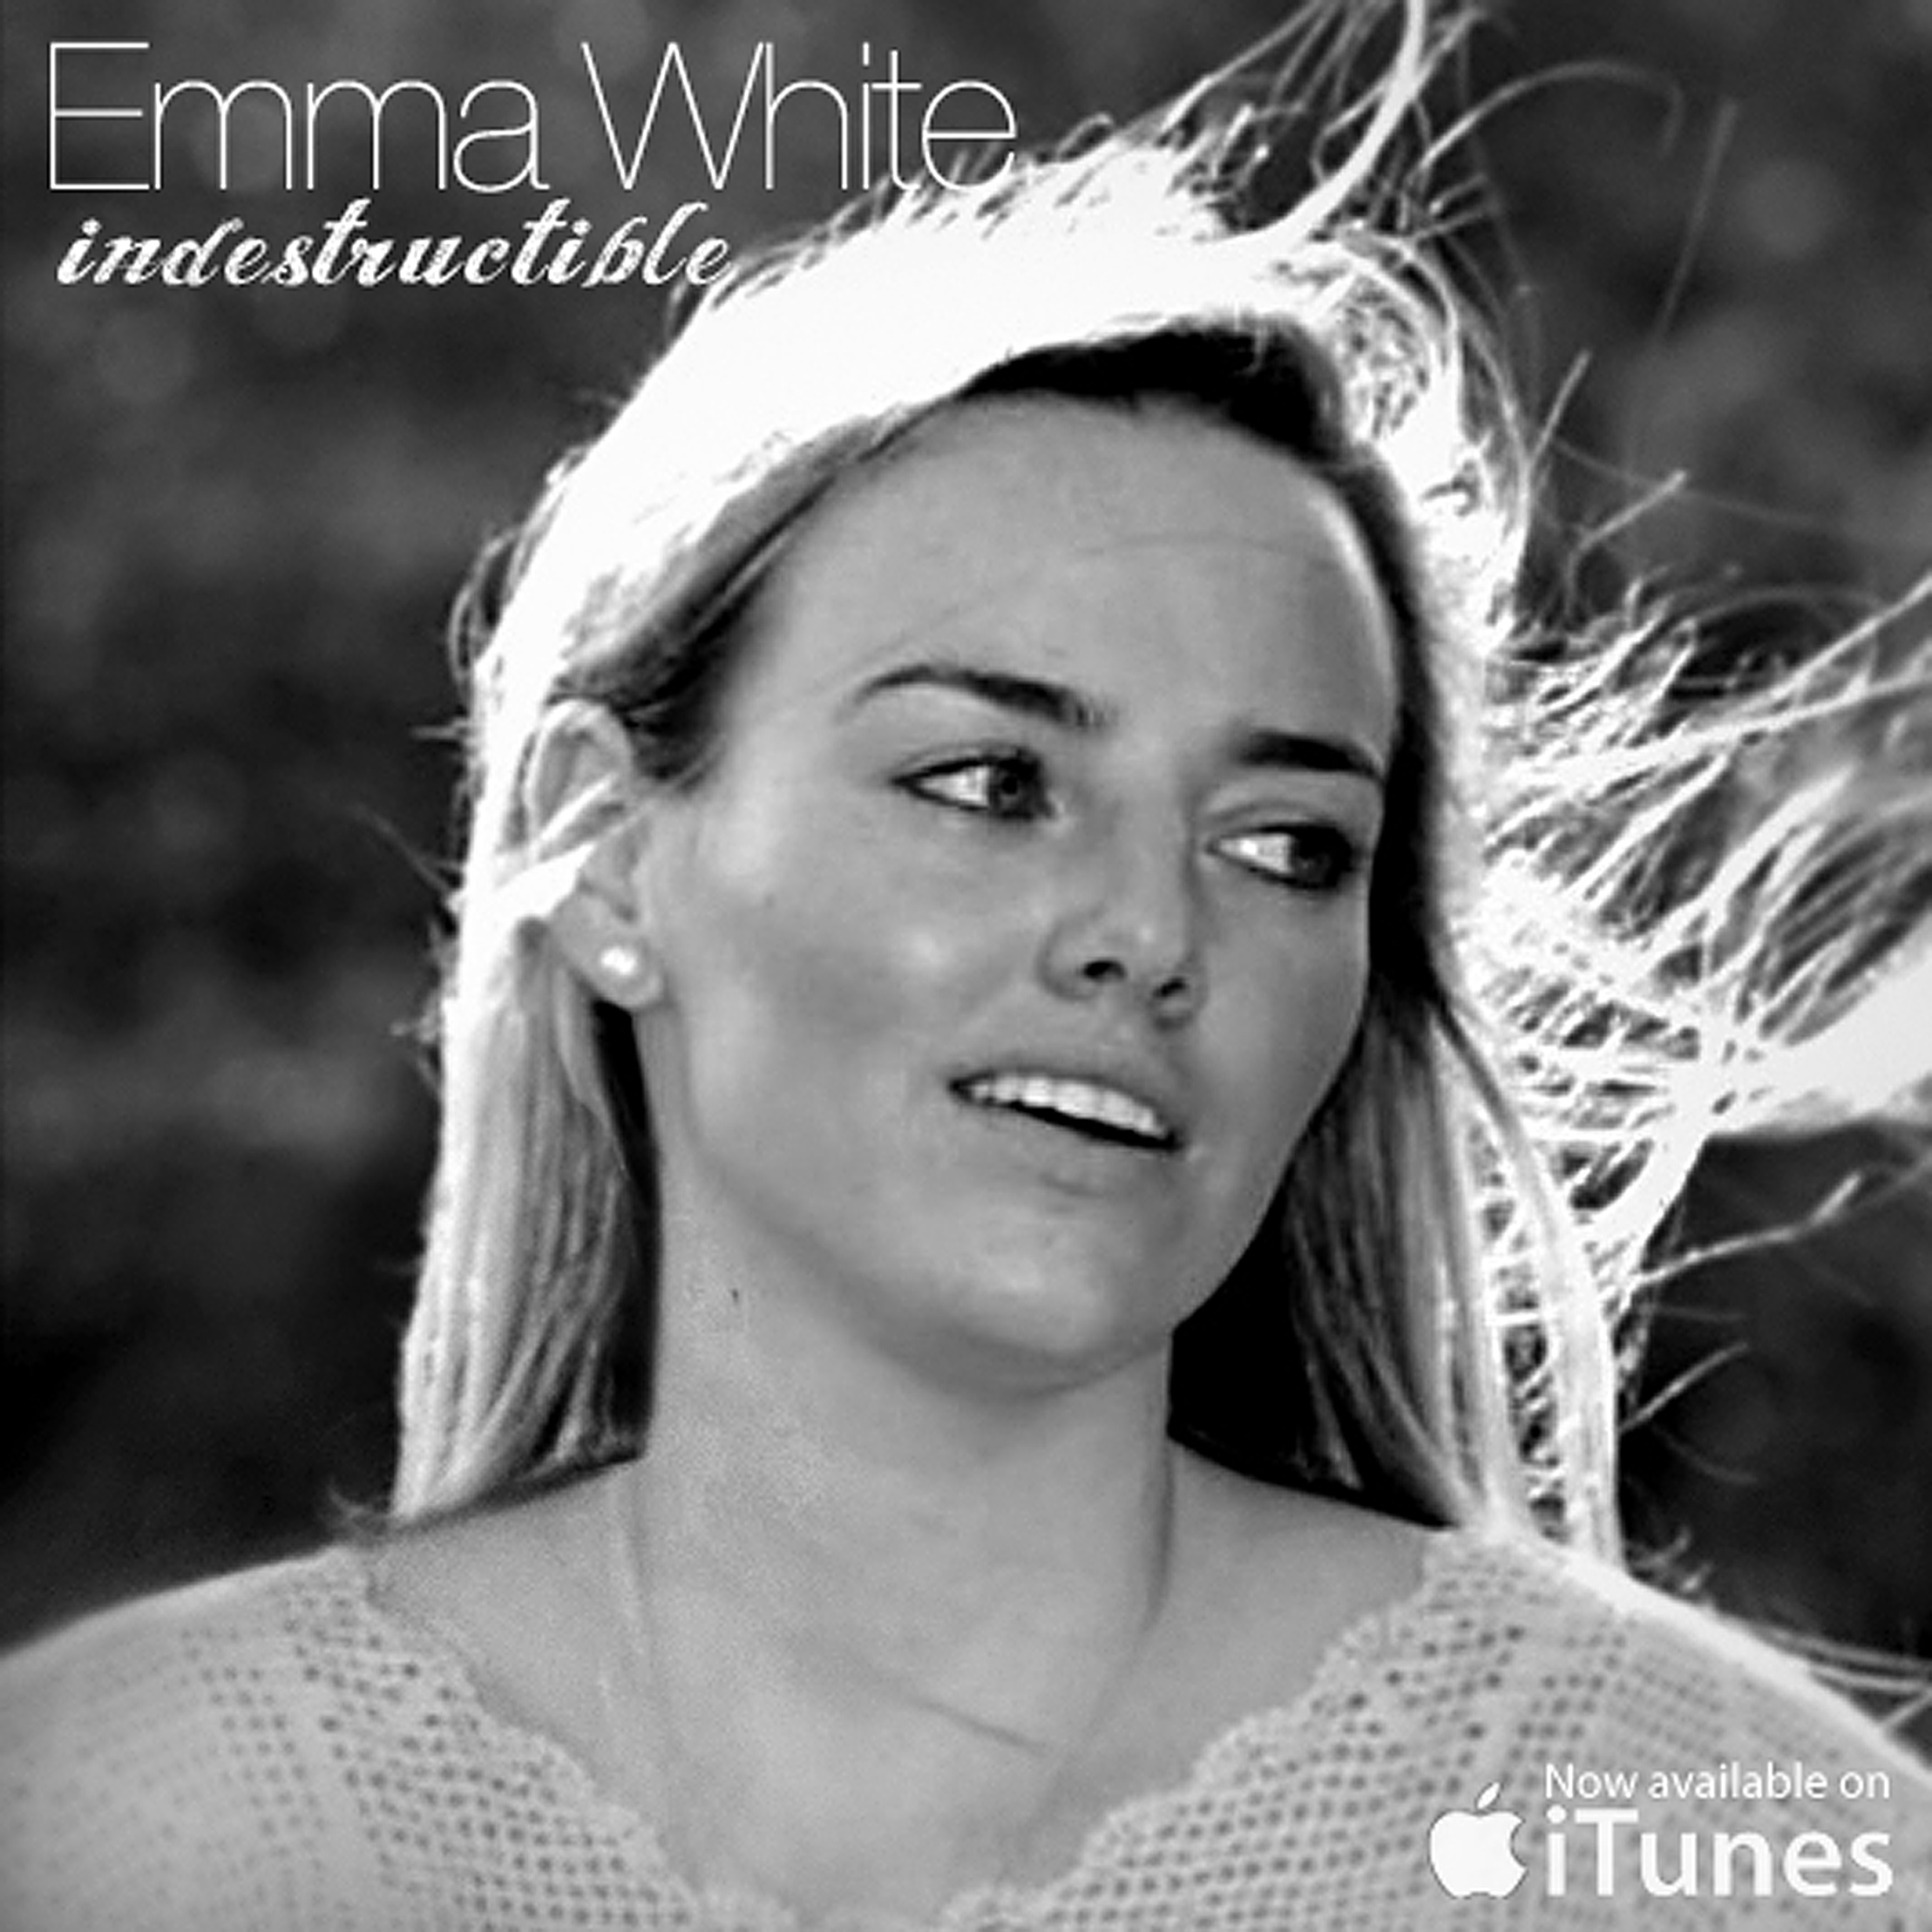 Indestructible - Single   Click to Purchase on iTunes!